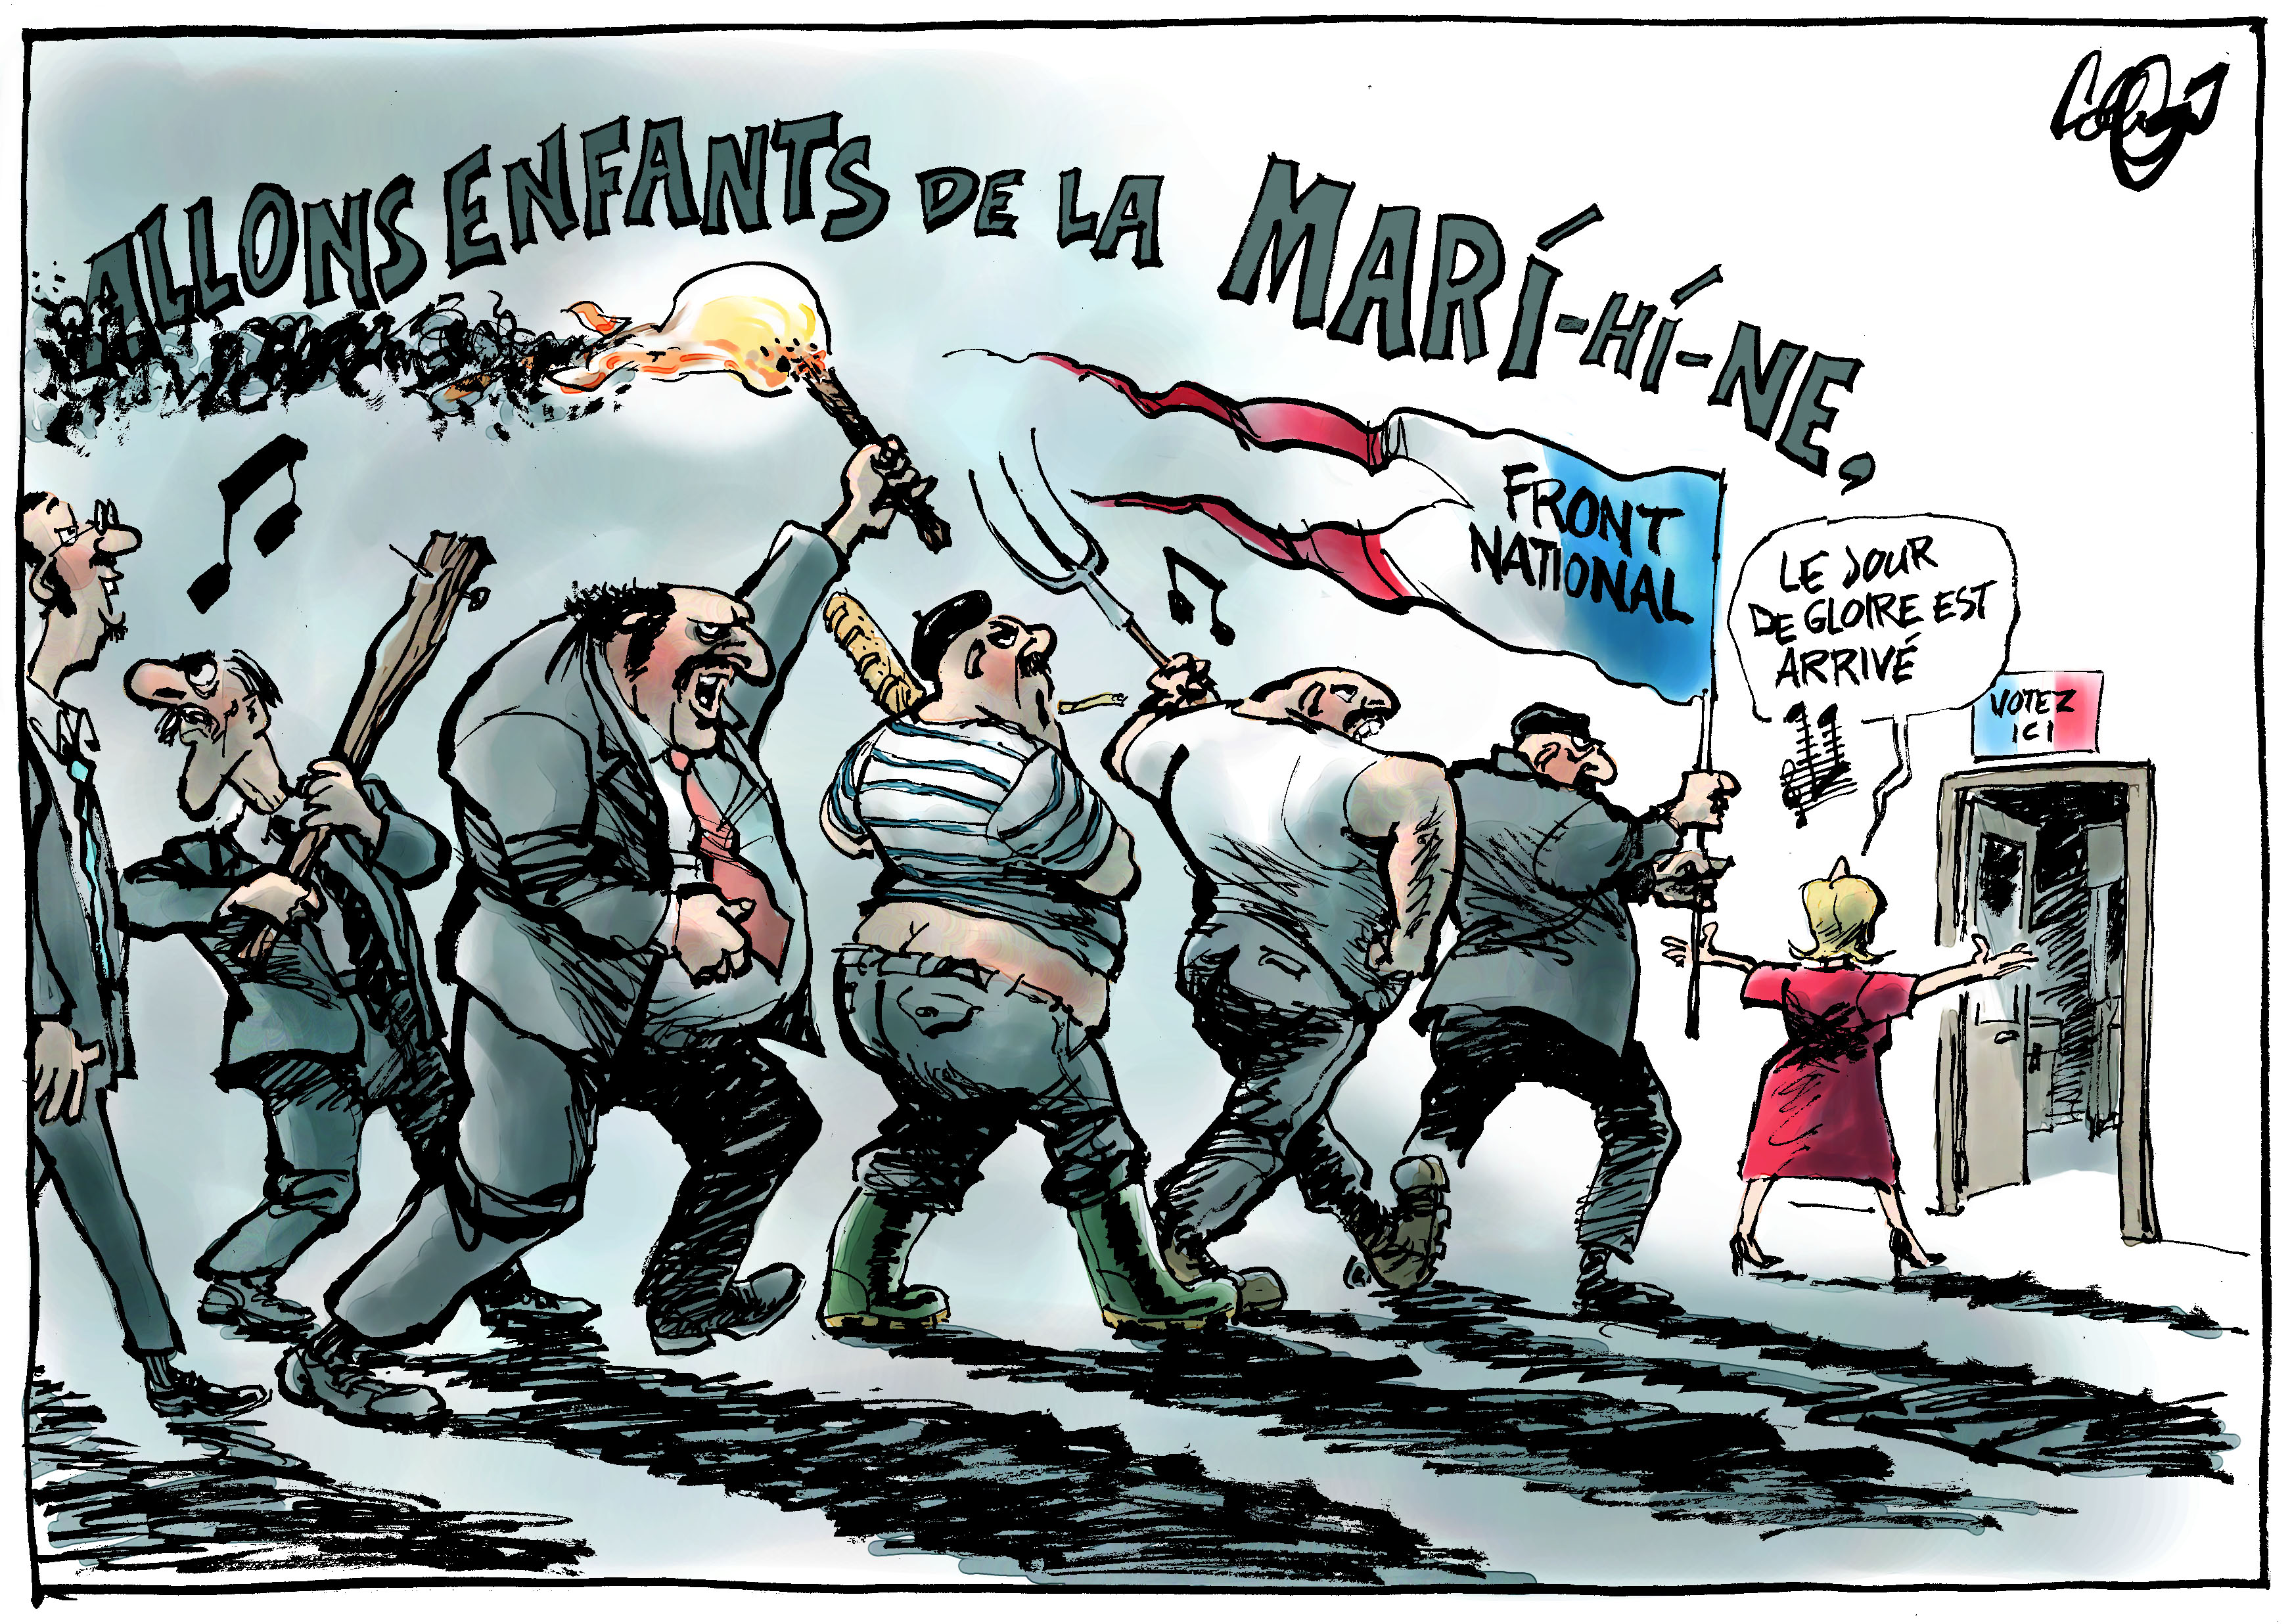 cartoon showing LePen fans chasing after her